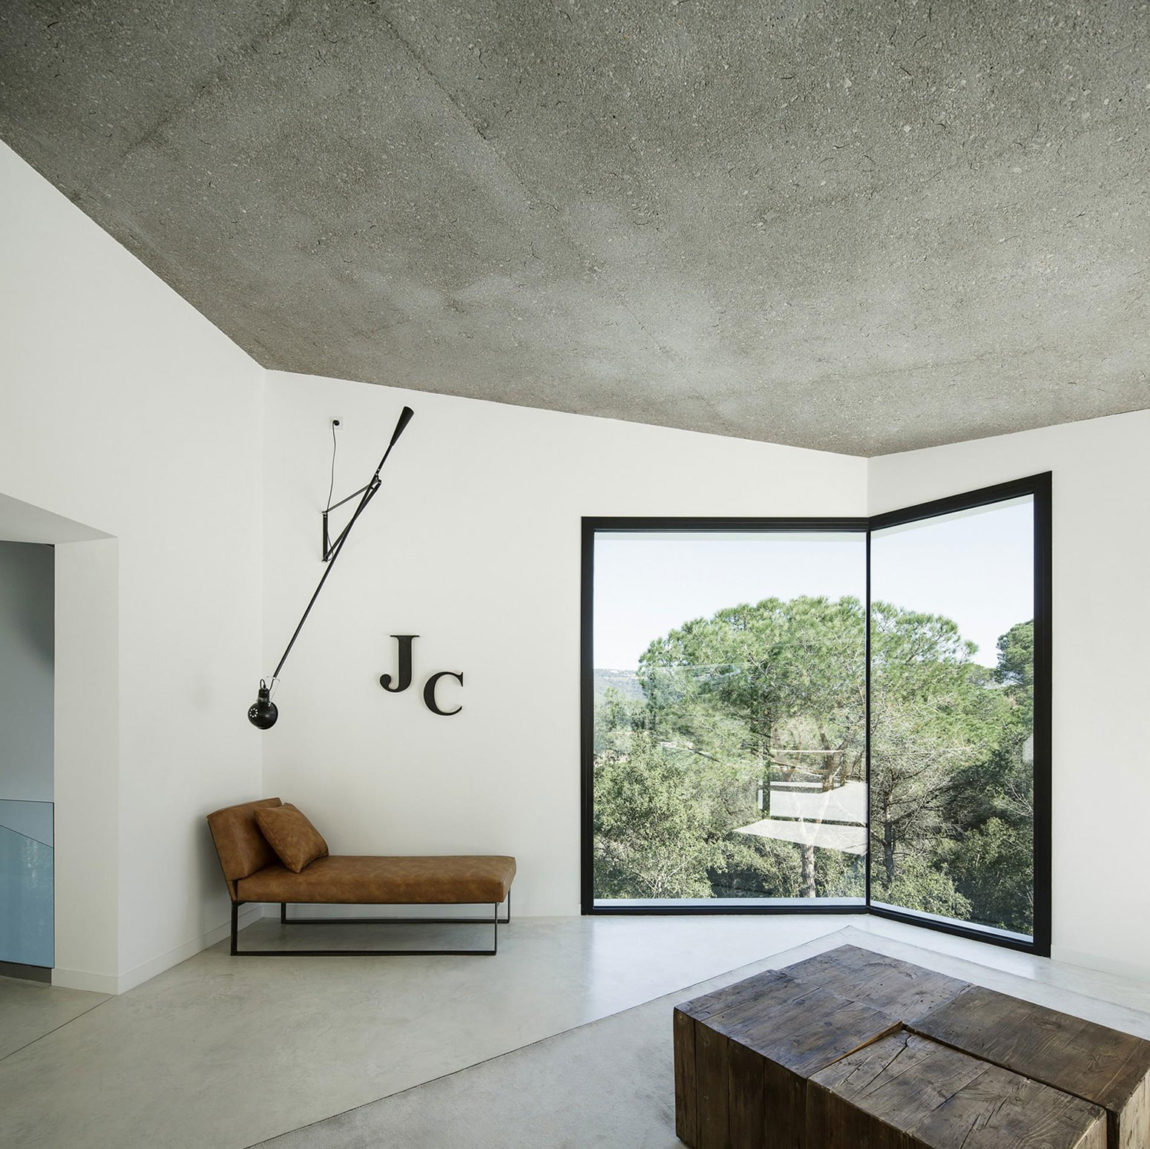 House JC by MIRAG Arquitectura i Gestió (4)